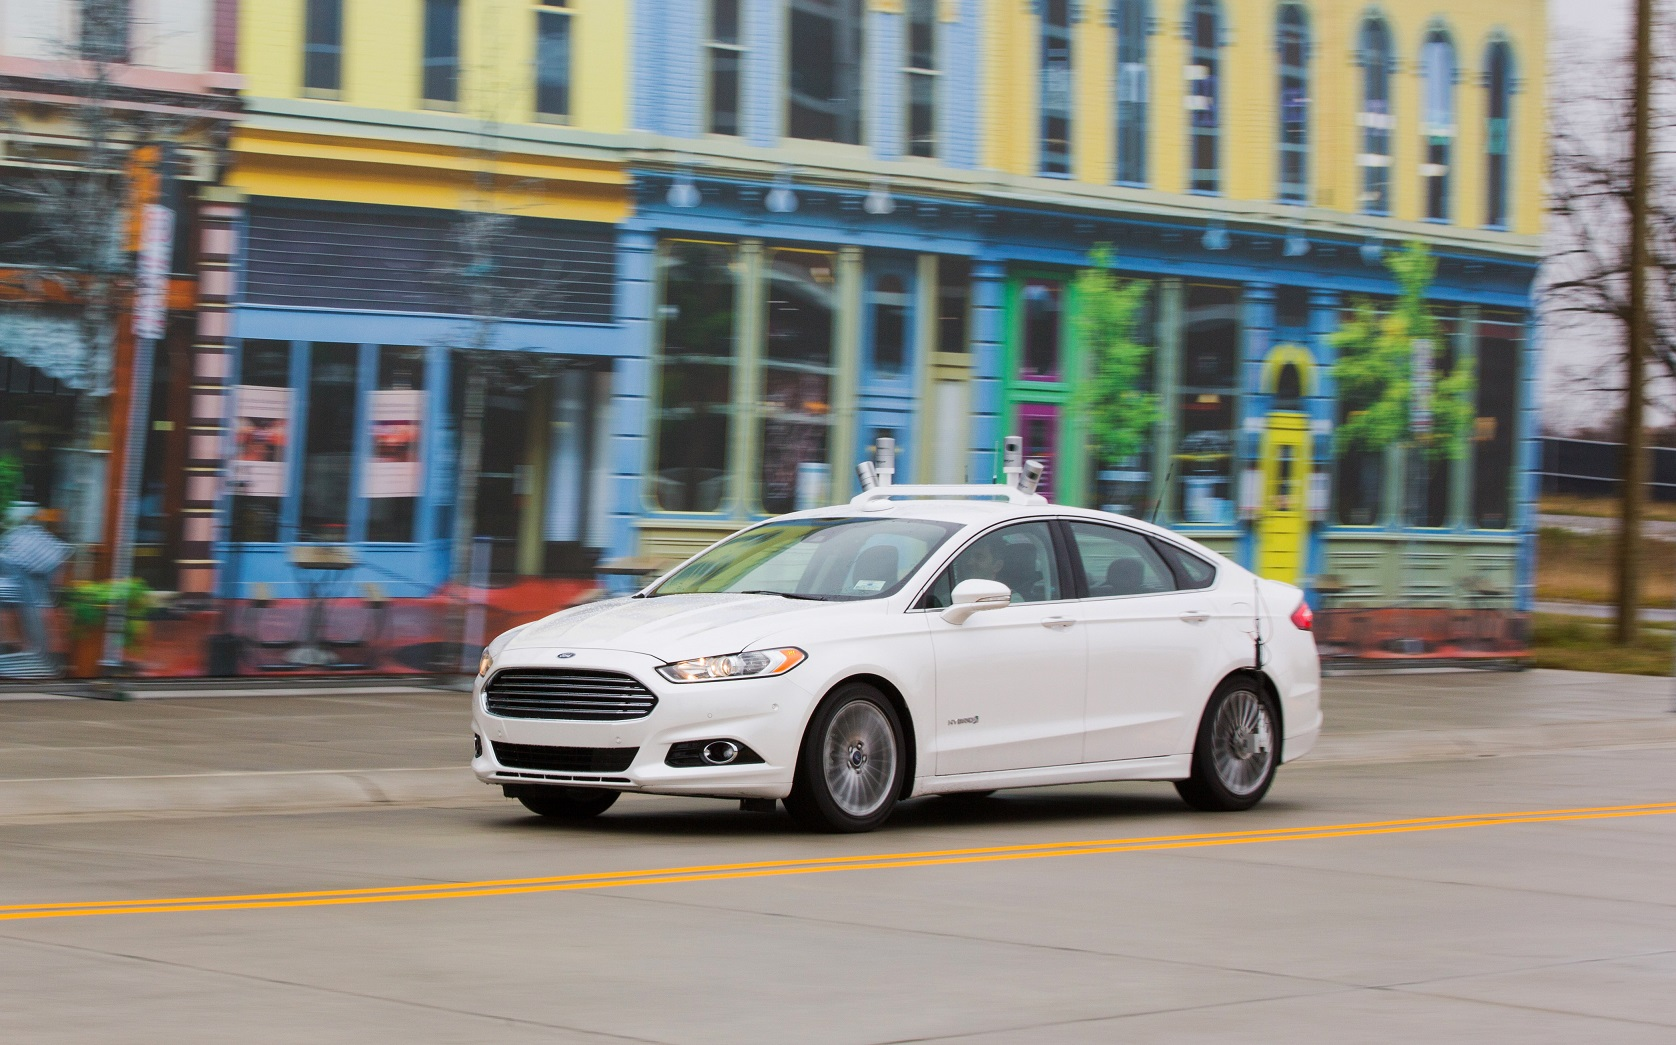 Teste do Ford Fusion Híbrido no campus da Universidade de Michigan, nos Estados Unidos. Foto Divulgação